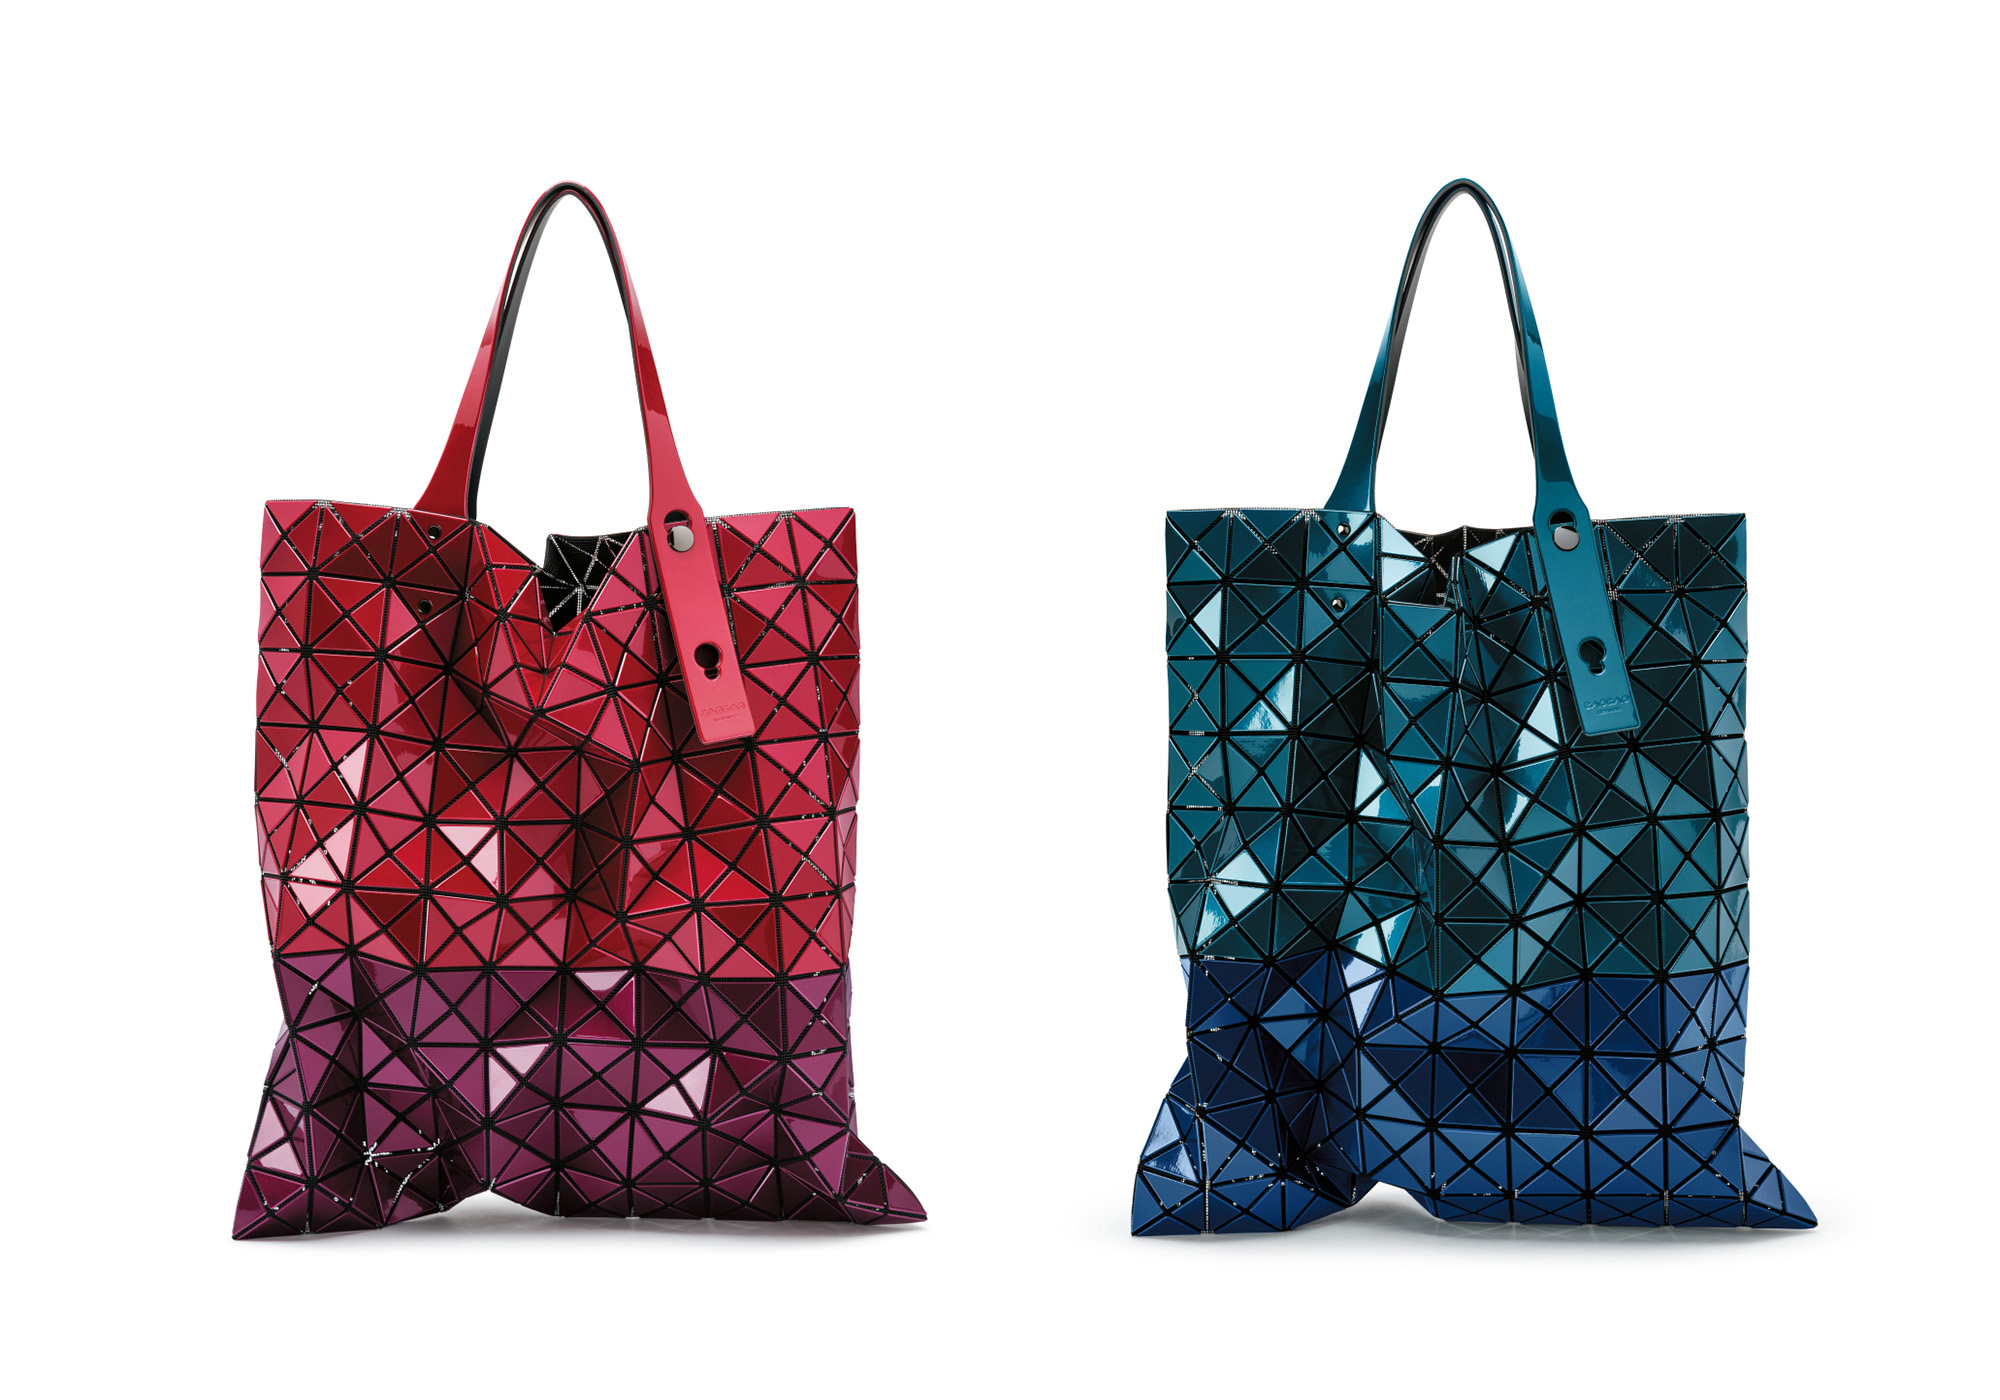 PRISM METALLIC Red × Bordeaux, Blue × Navy 各¥48,000 | ©︎ ISSEY MIYAKE INC.